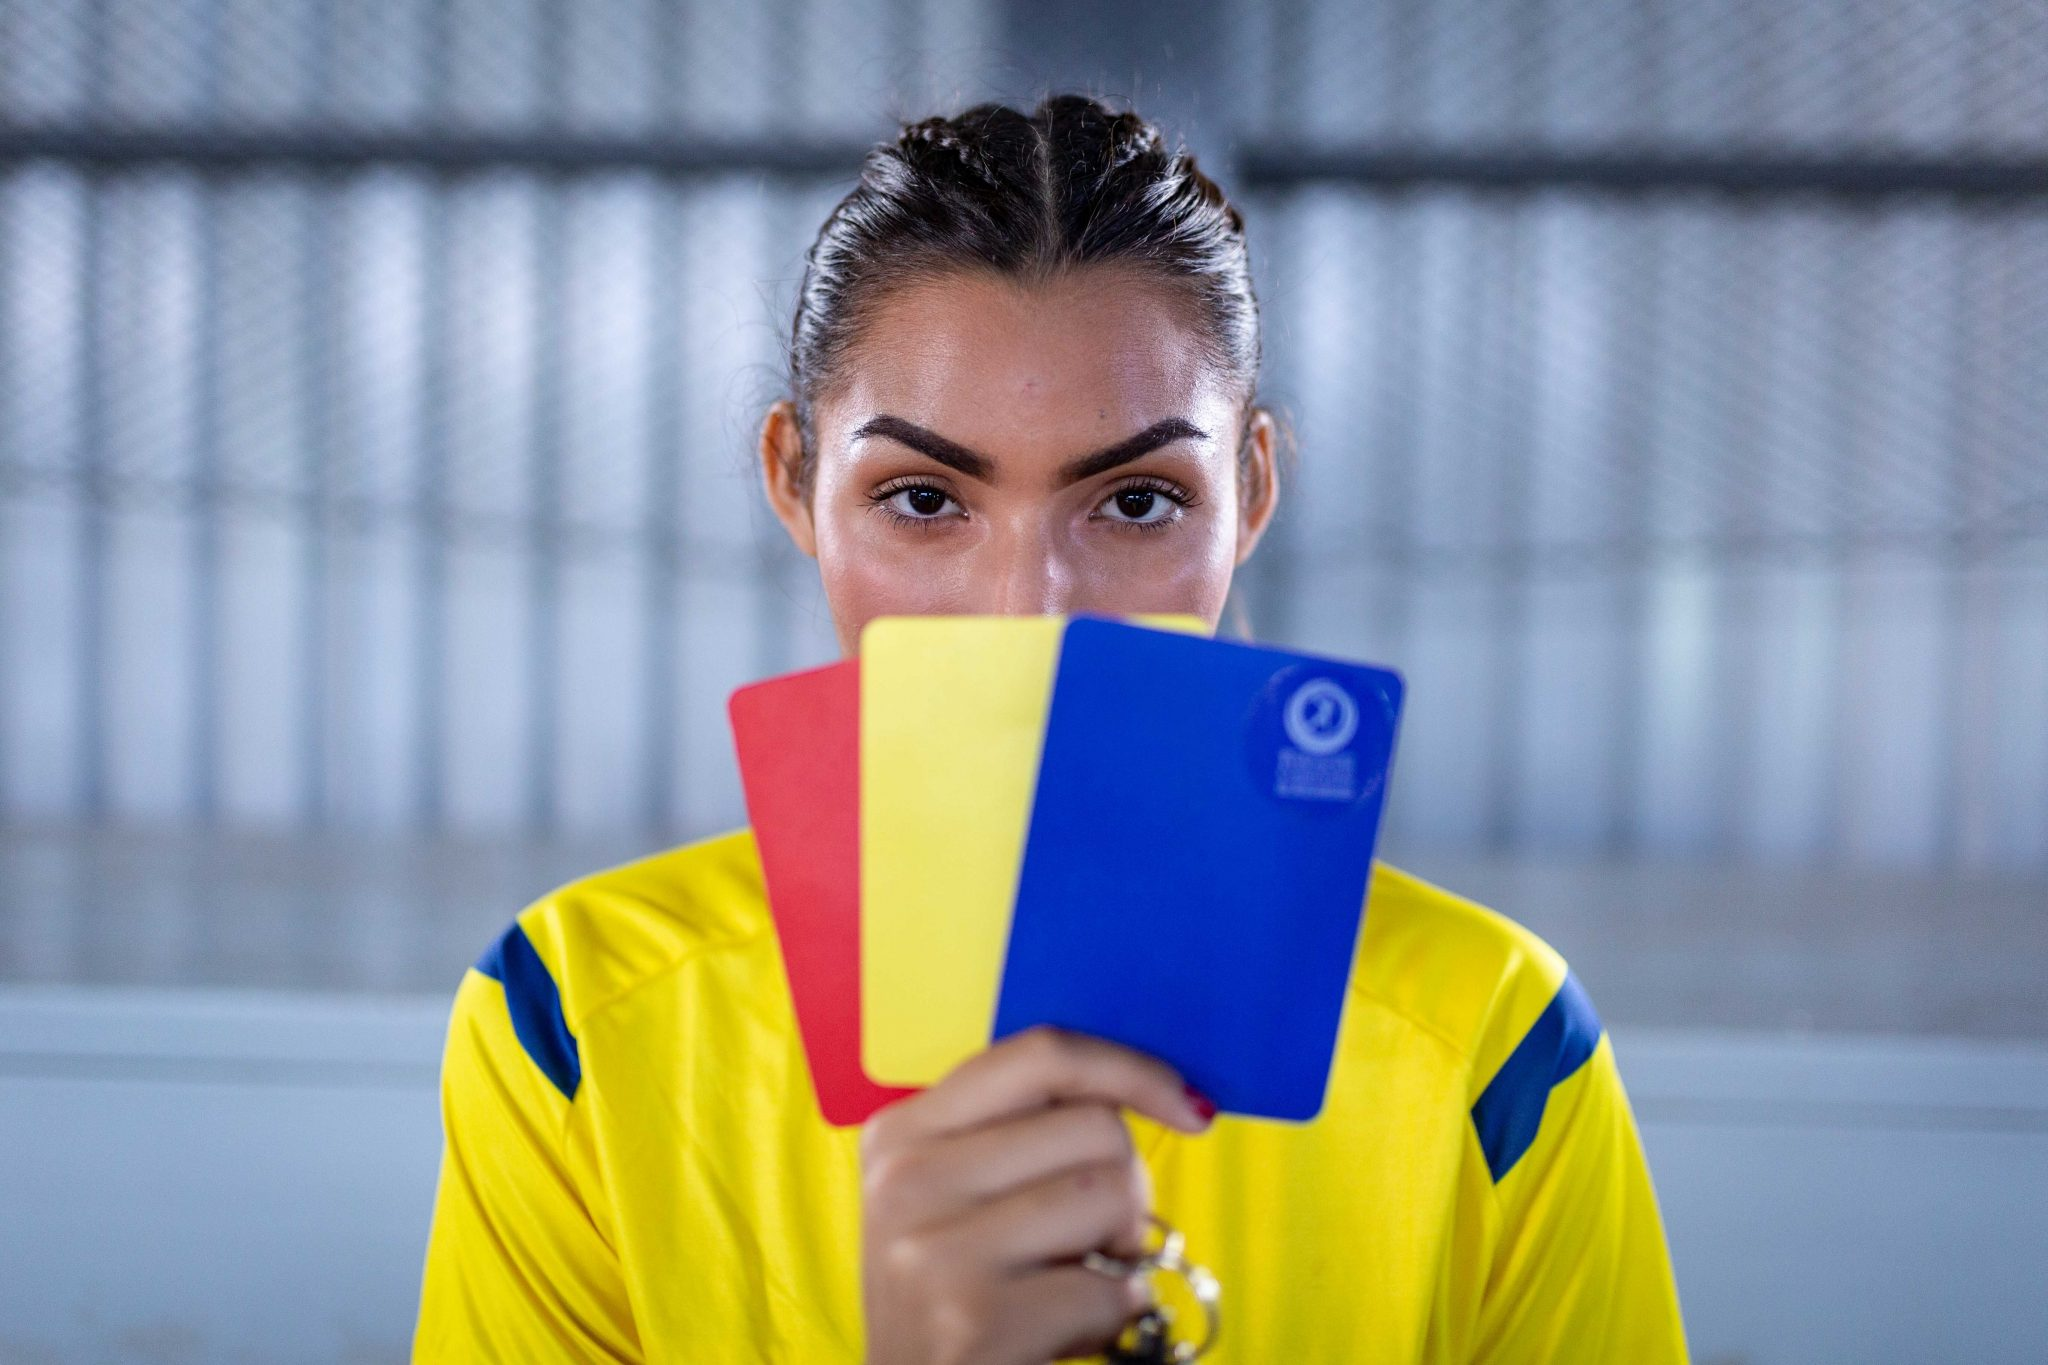 Arianna, referee handball girl